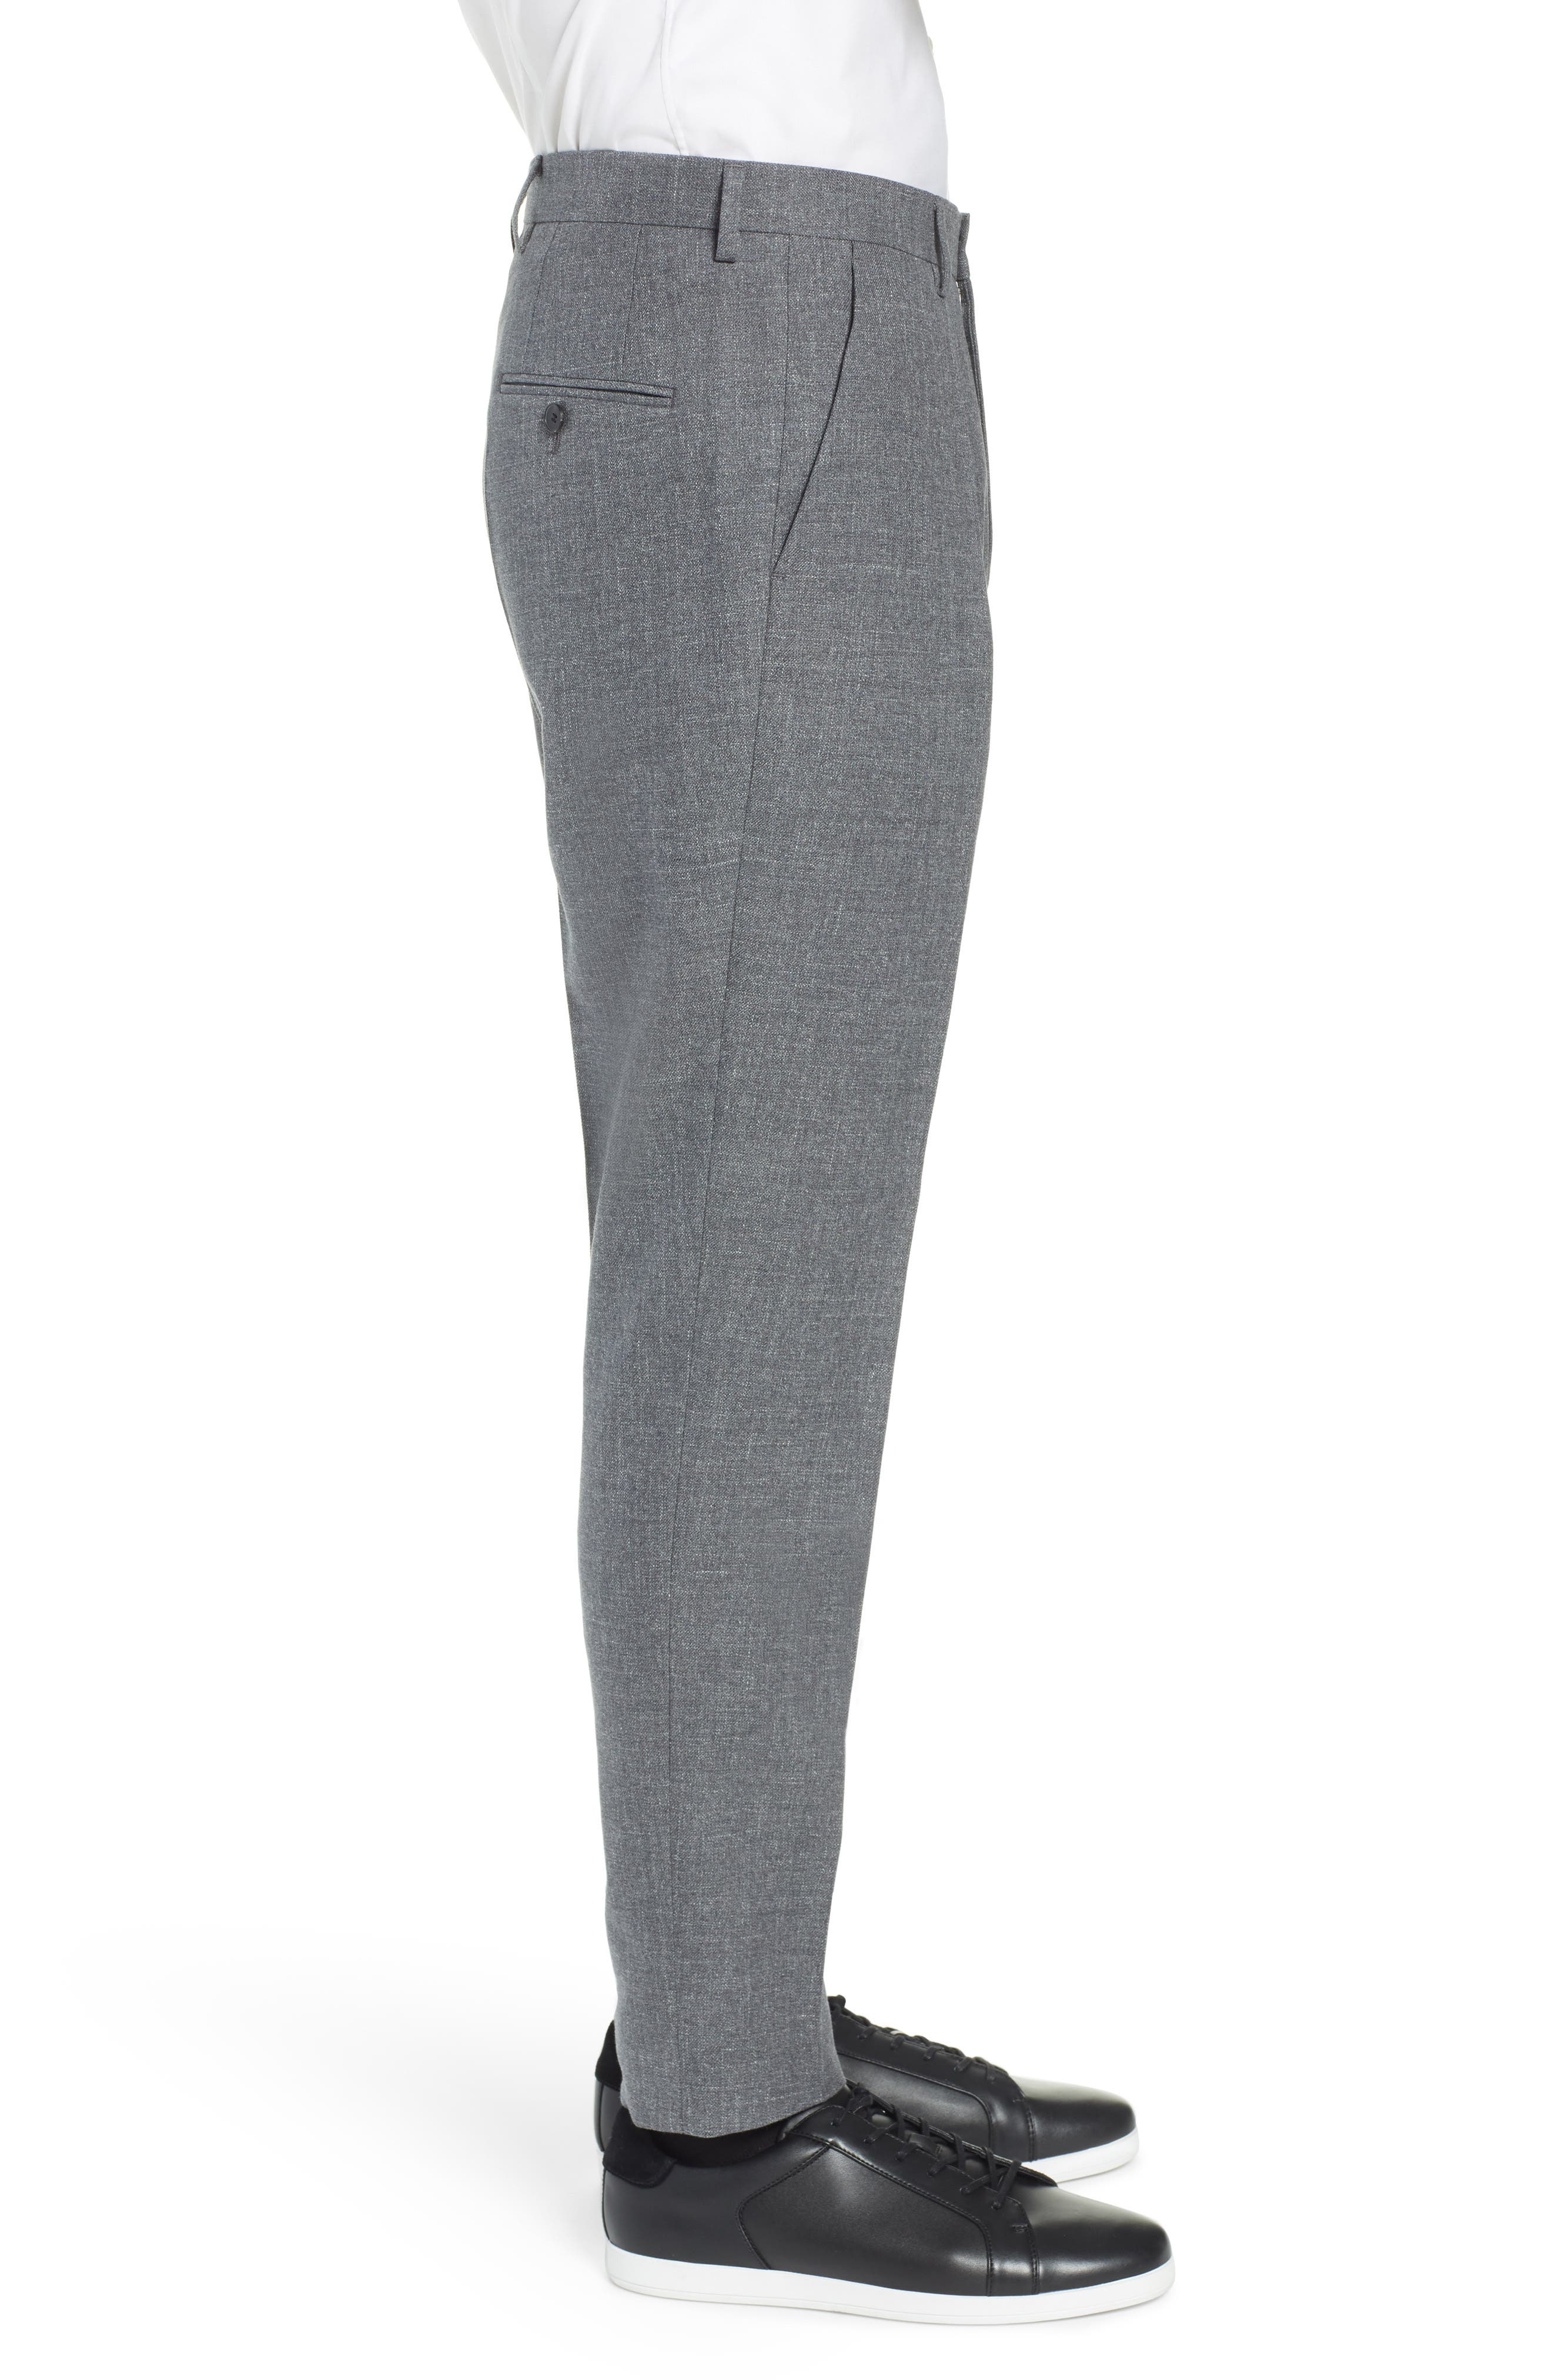 Ole Pleated Solid Wool & Cotton Trousers,                             Alternate thumbnail 3, color,                             MEDIUM GREY